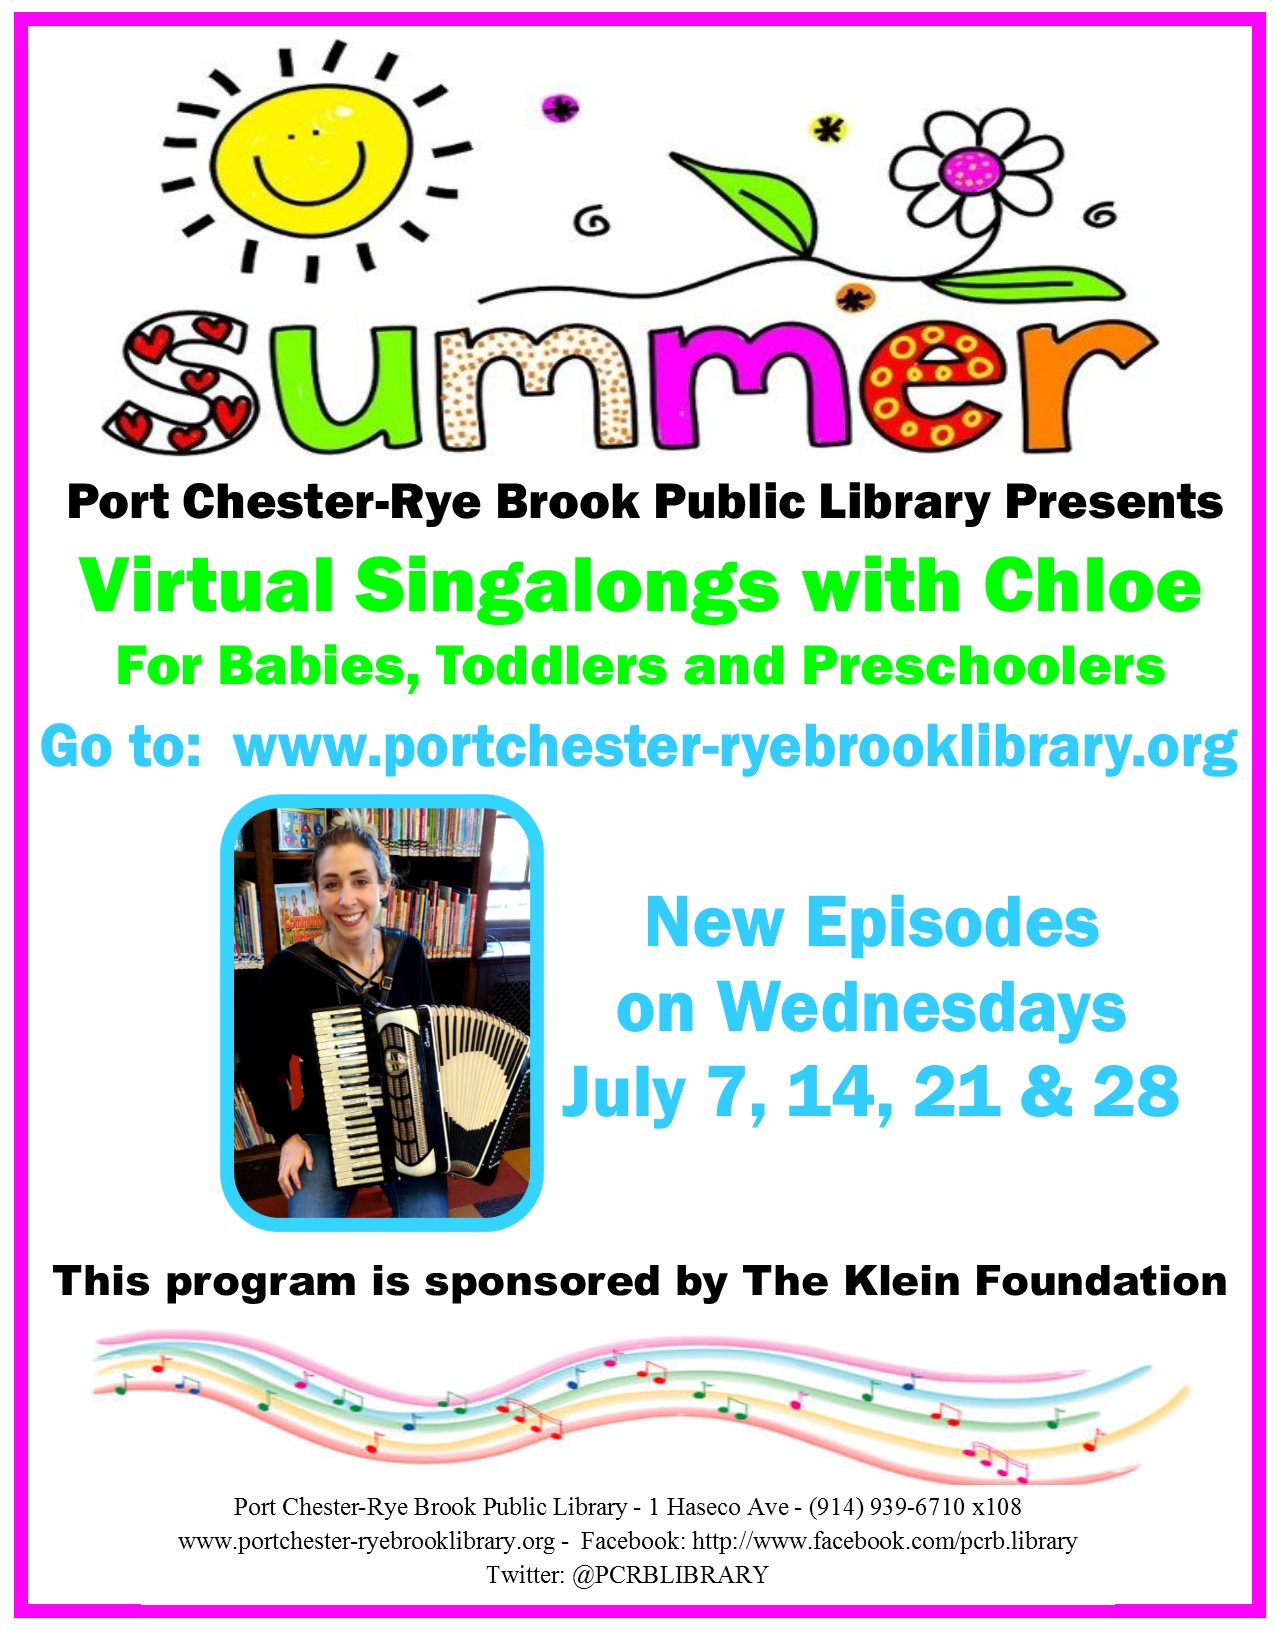 Virtual Summer Singalongs with Chloe at Port Chester-Rye Brook Public Library